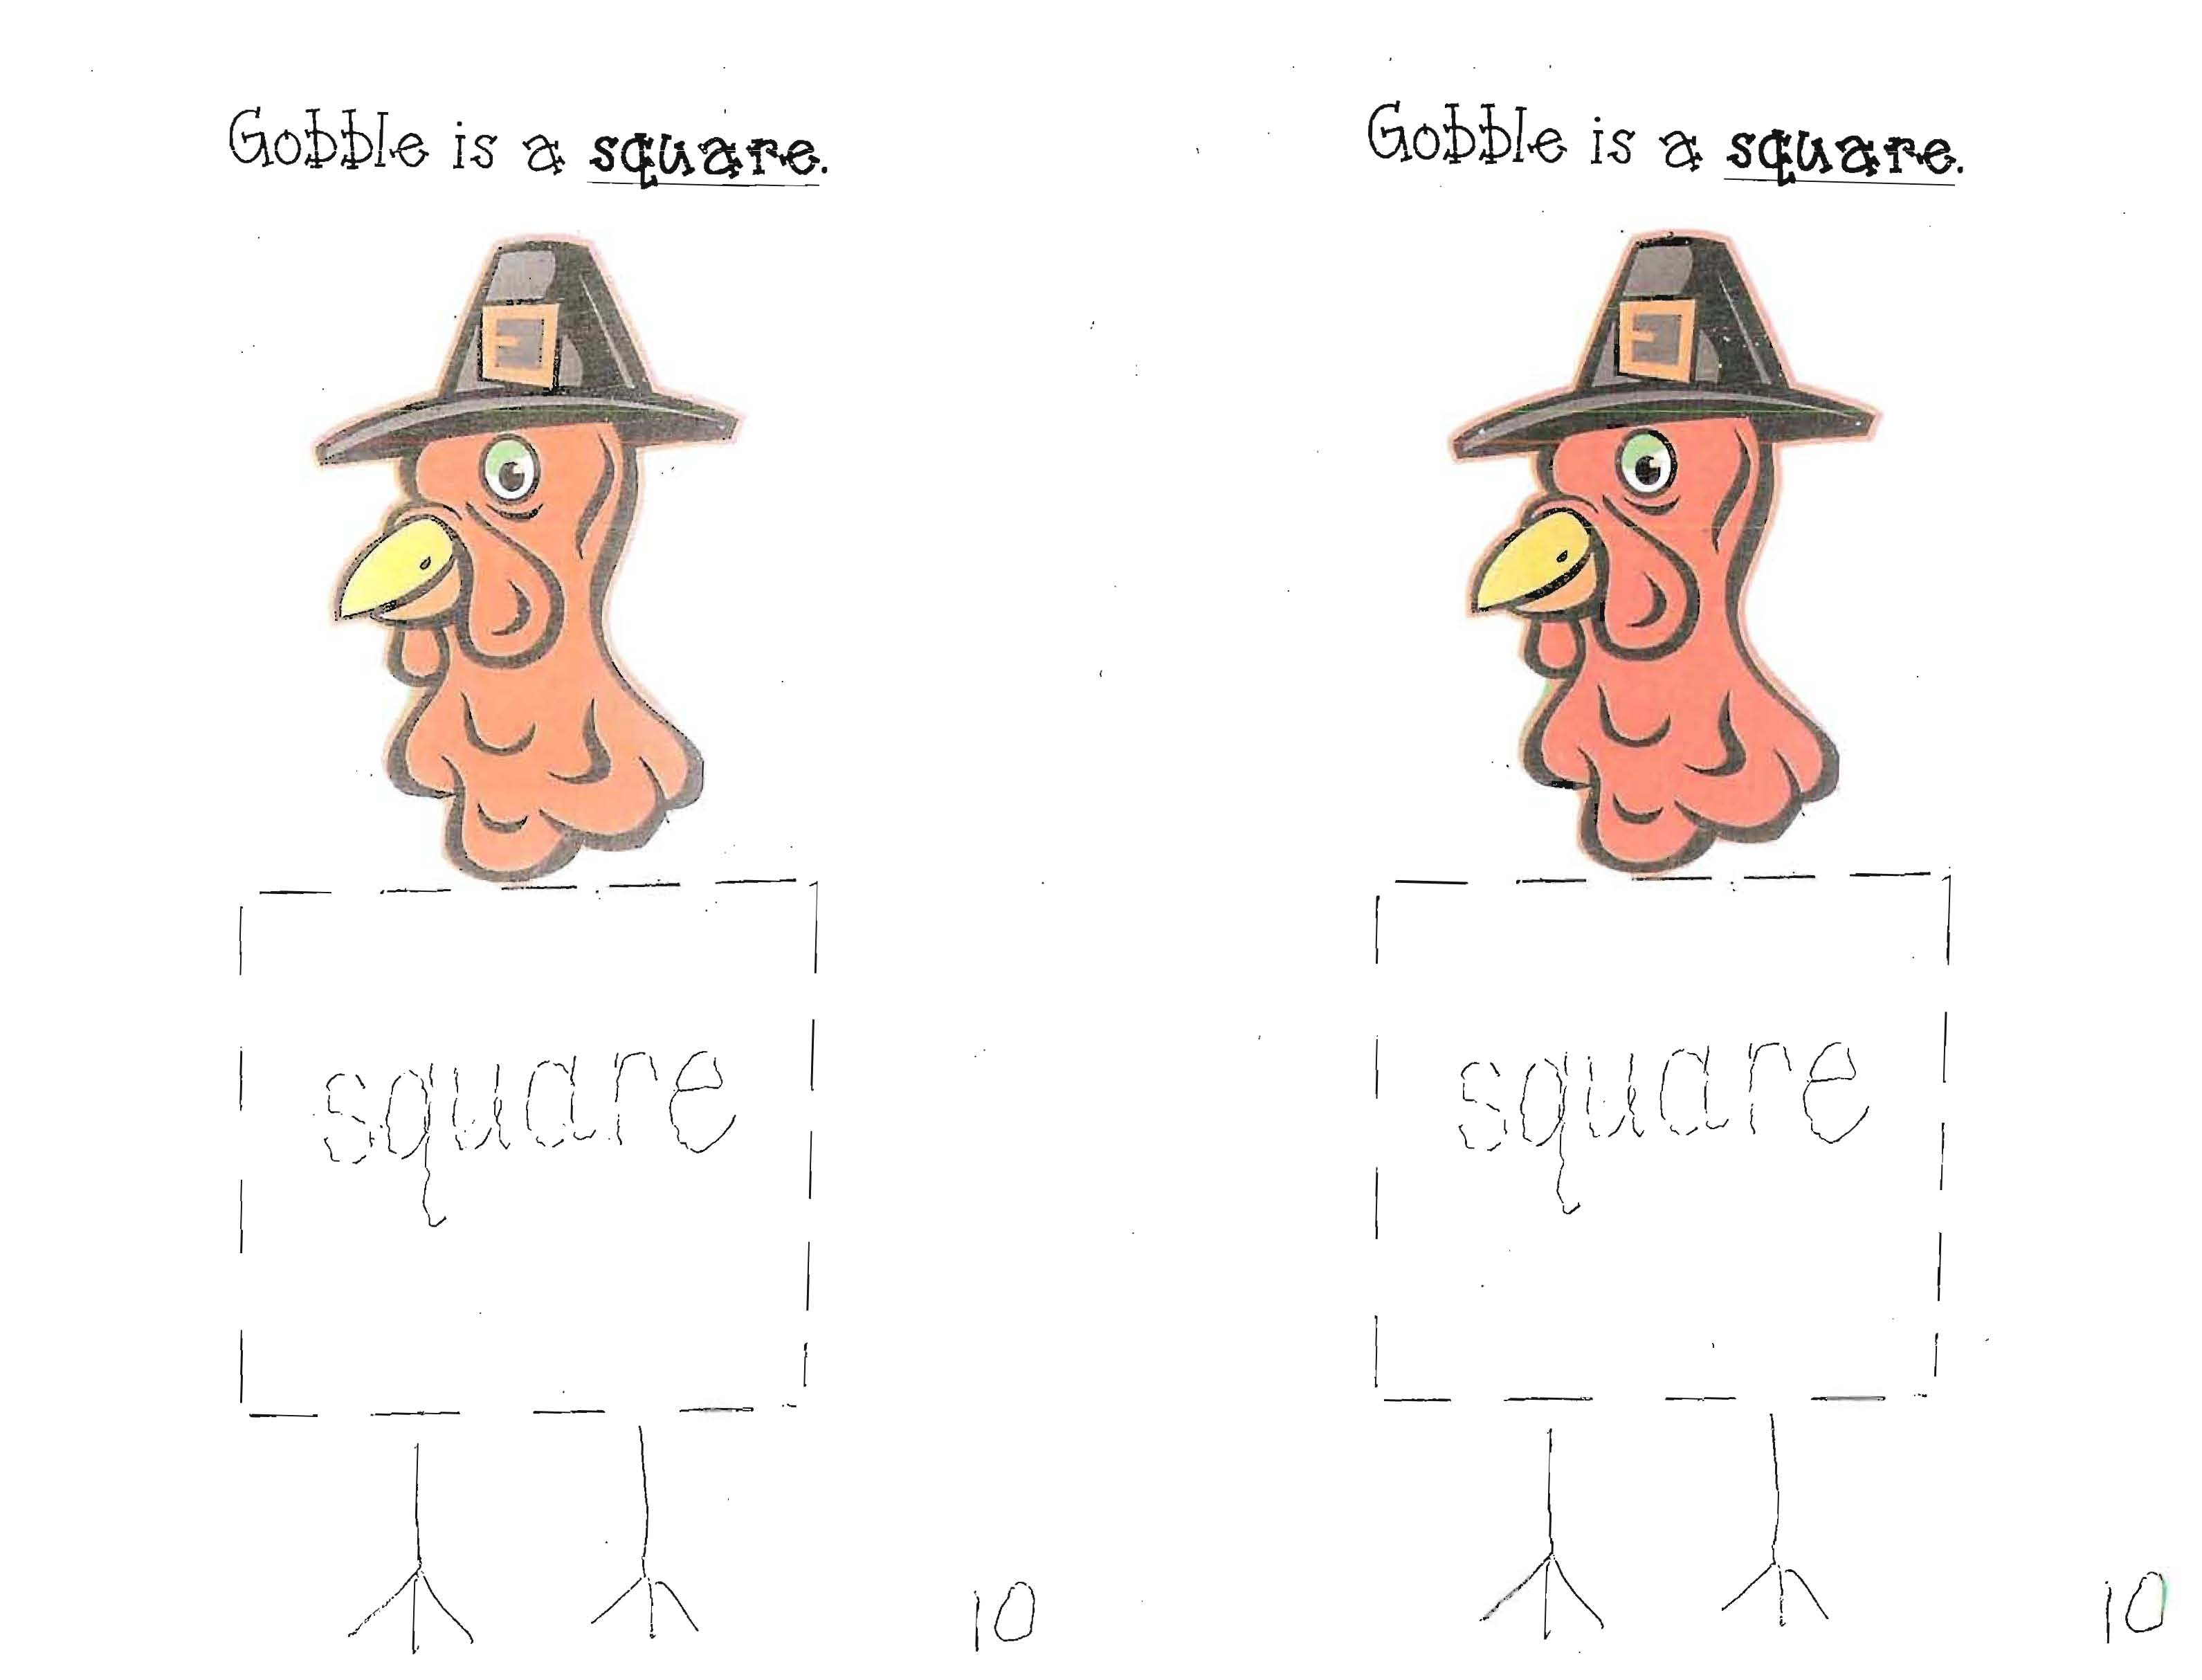 FREE common core lessons, turkey shape booklet, turkey activities, Thanksgiving activities, turkey lessons, Thanksgiving lessons, November easy readers, november booklet, turkey booklet, shape booklet, shape activities, shape lessons, common core lessons for first grade, common core lessons for kindergarten, rhyming reader, rhyming lessons, rhyming activities, rhyming booklet, Daily 5 activities for November, Word Work activities for November,